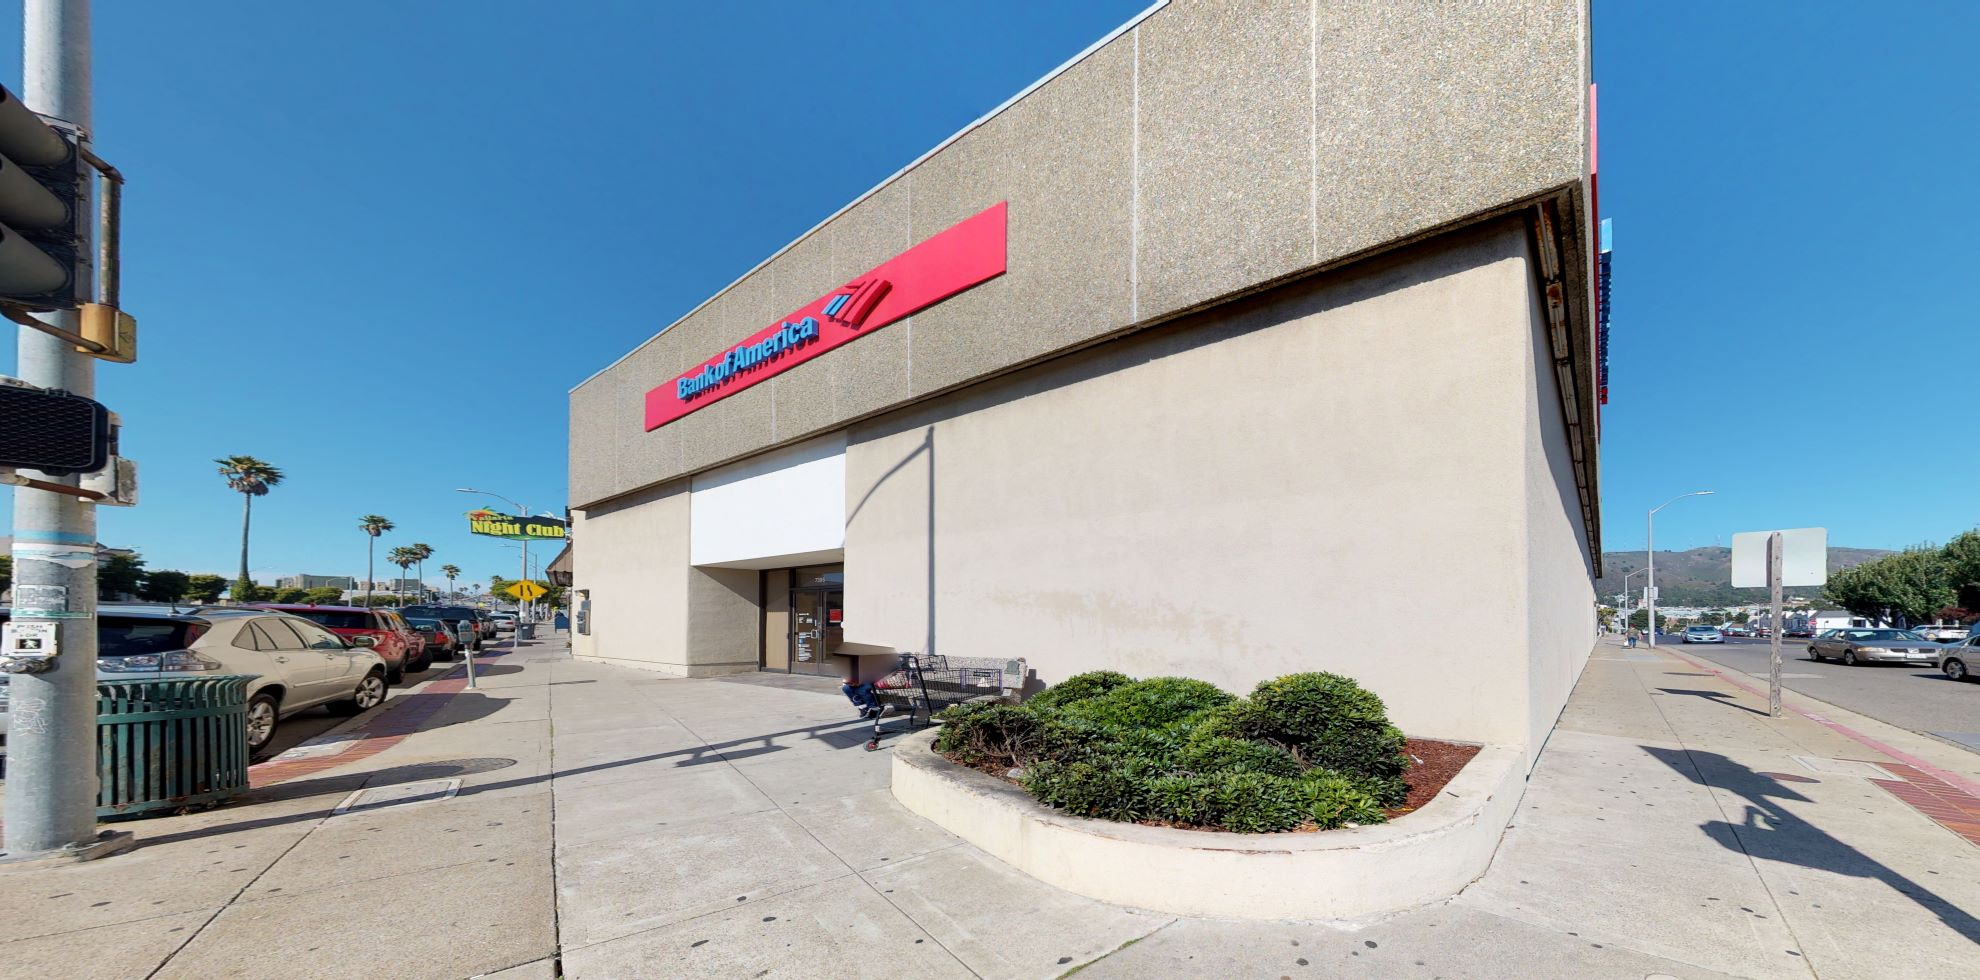 Bank of America financial center with walk-up ATM | 7395 Mission St, Daly City, CA 94014